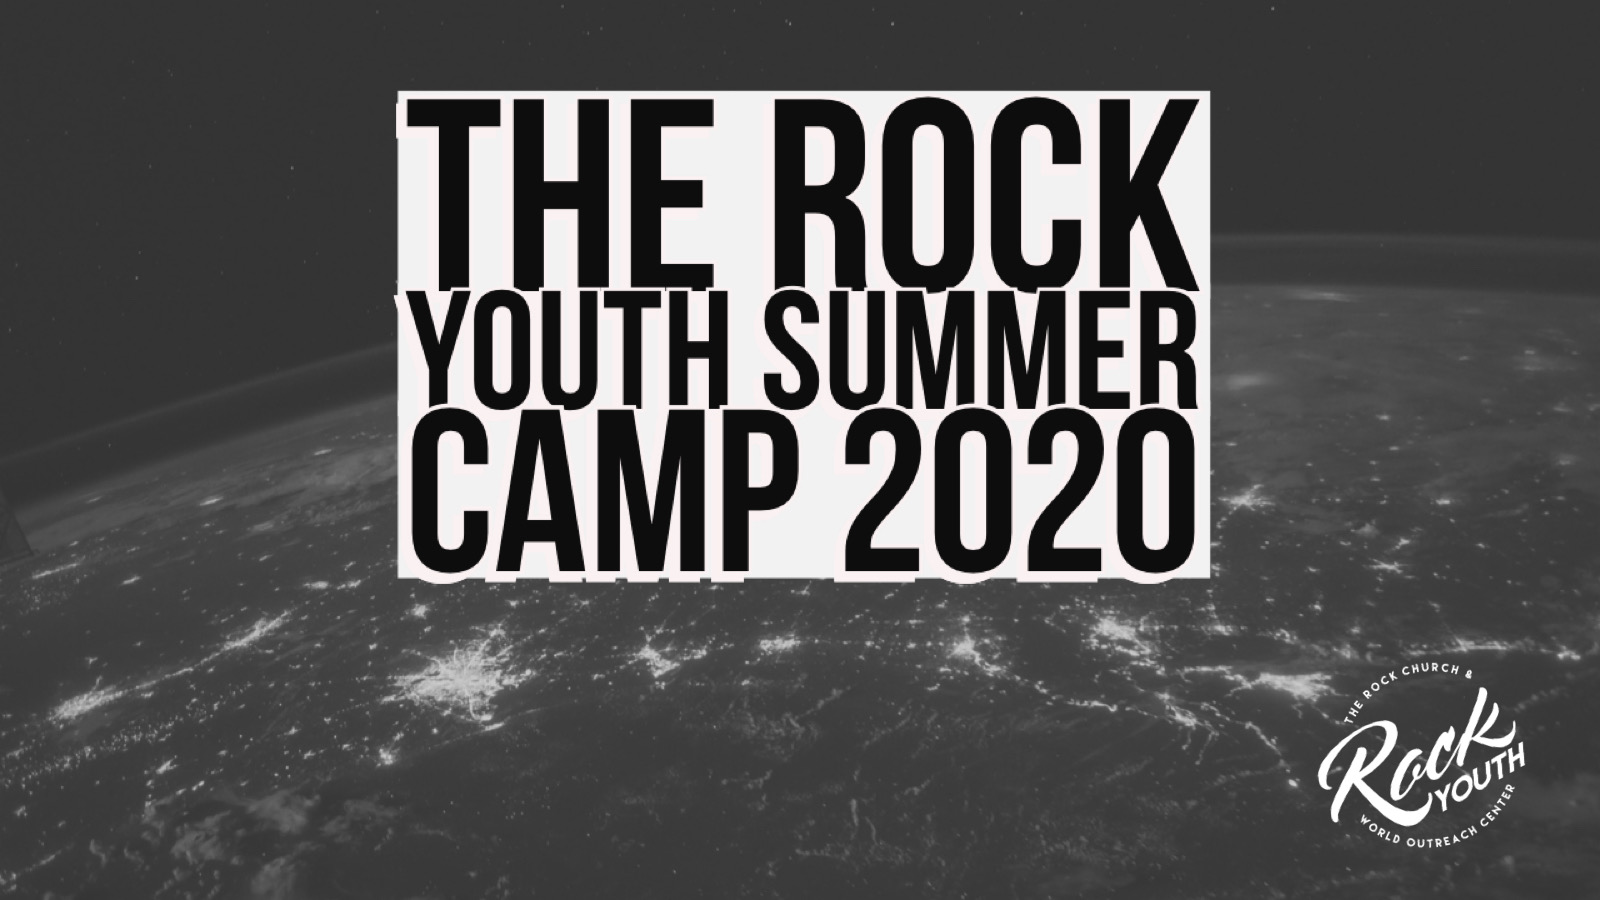 The Rock Youth Summer Camp 2020